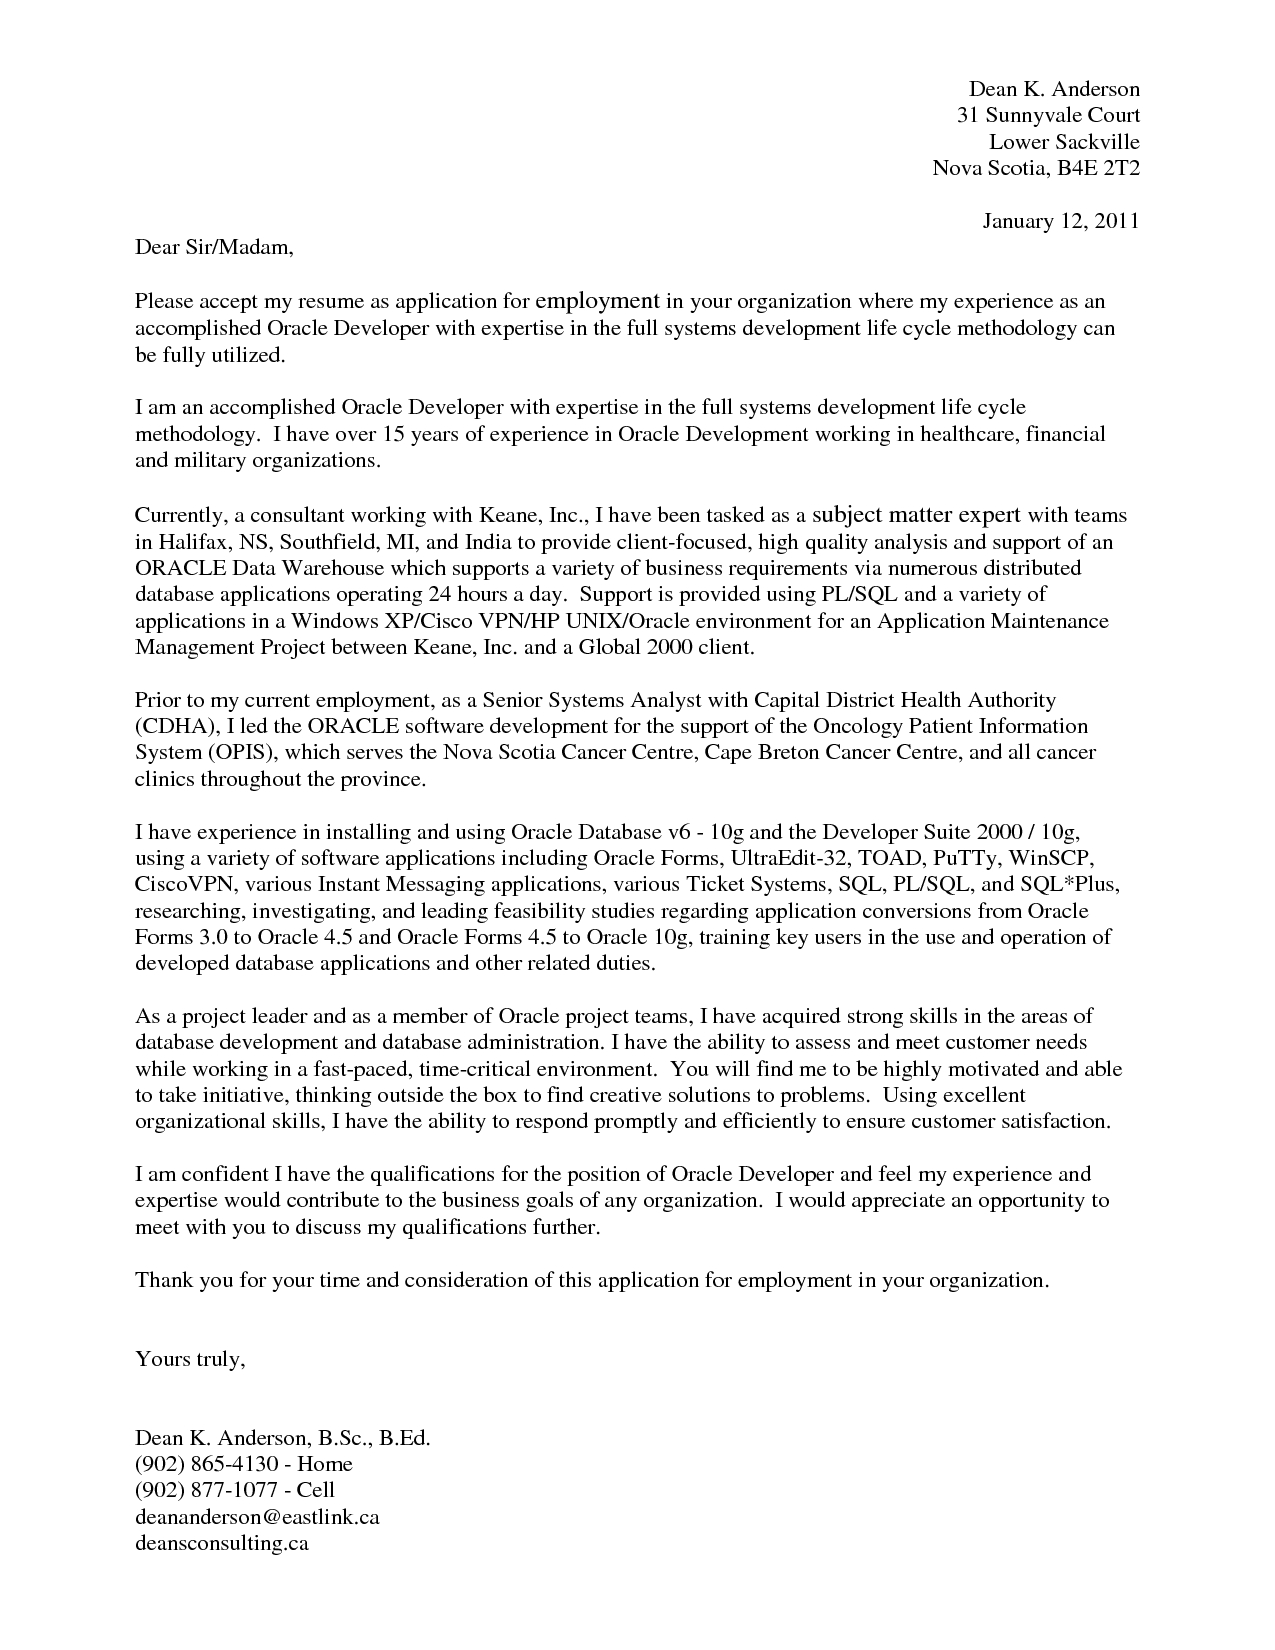 Mortgage Payoff Letter Template Examples  Letter Template Collection